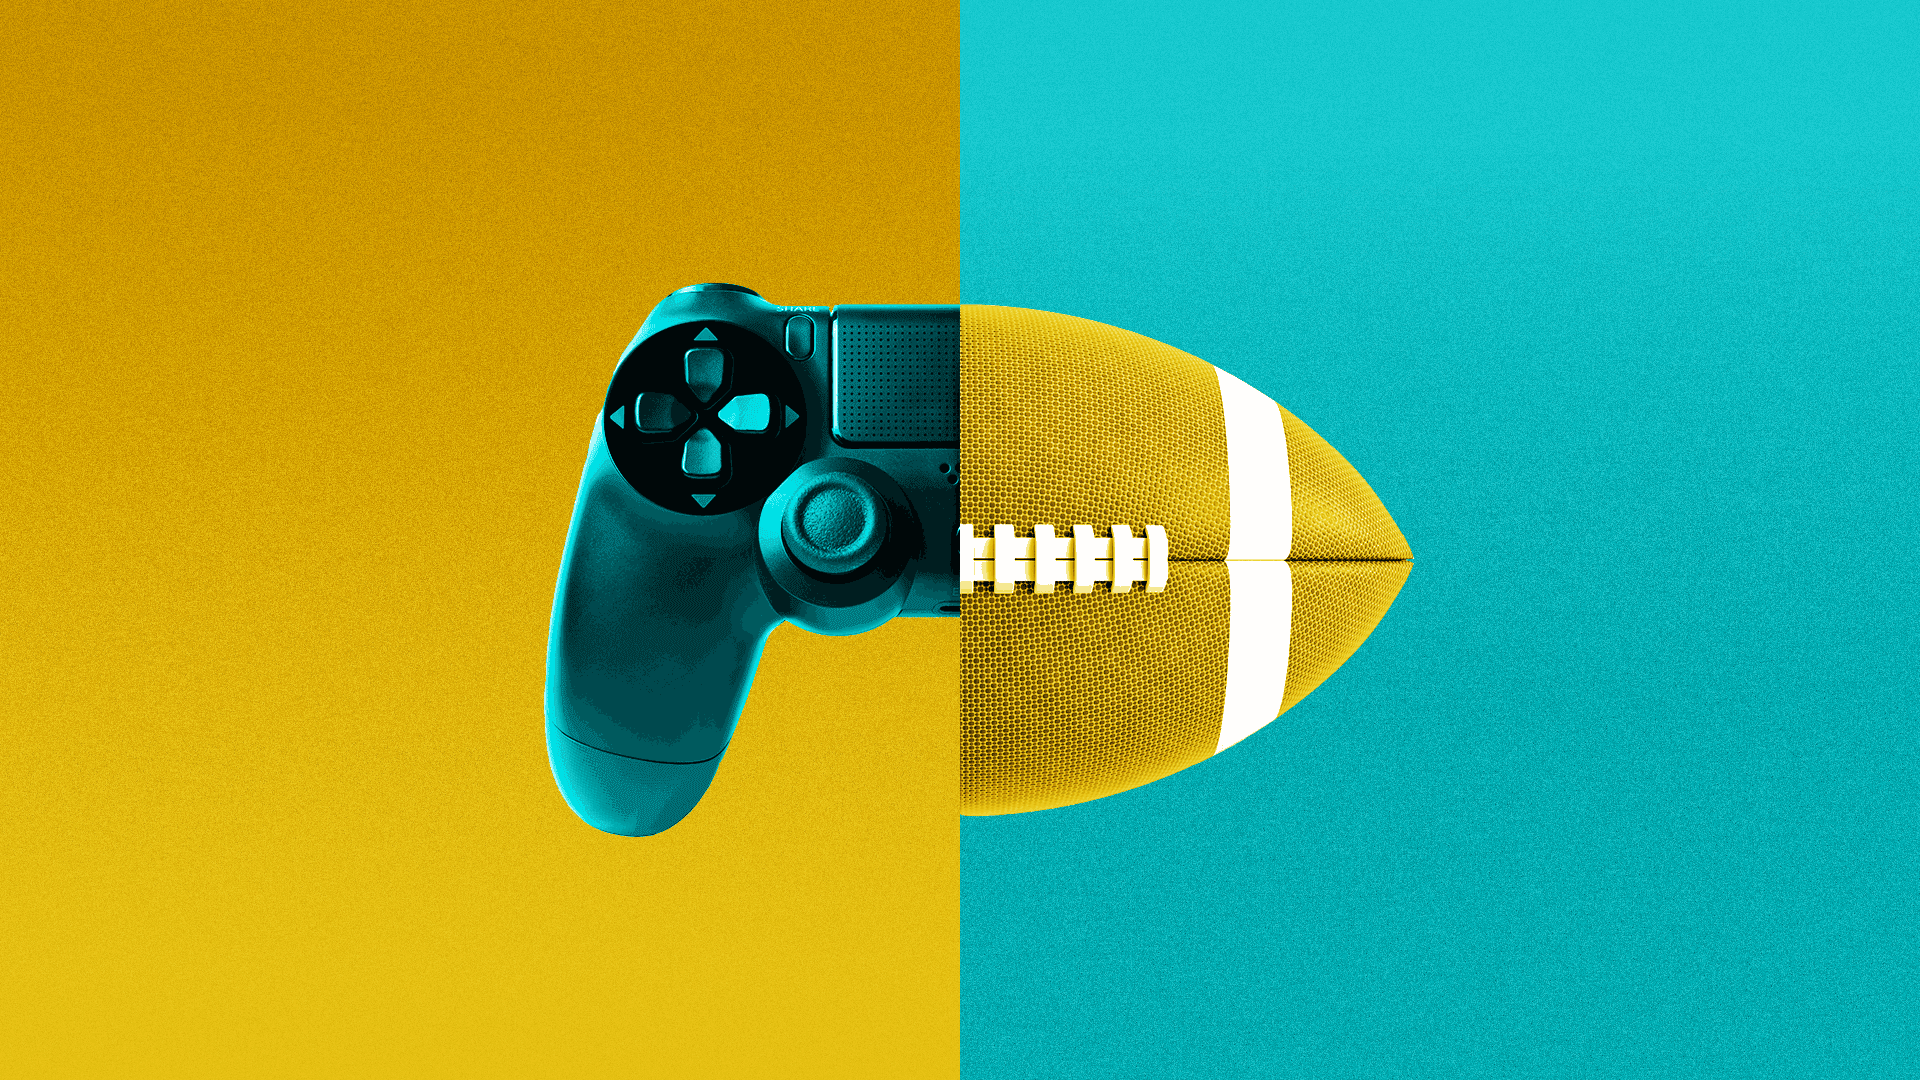 An illustration of a gaming console controller and football